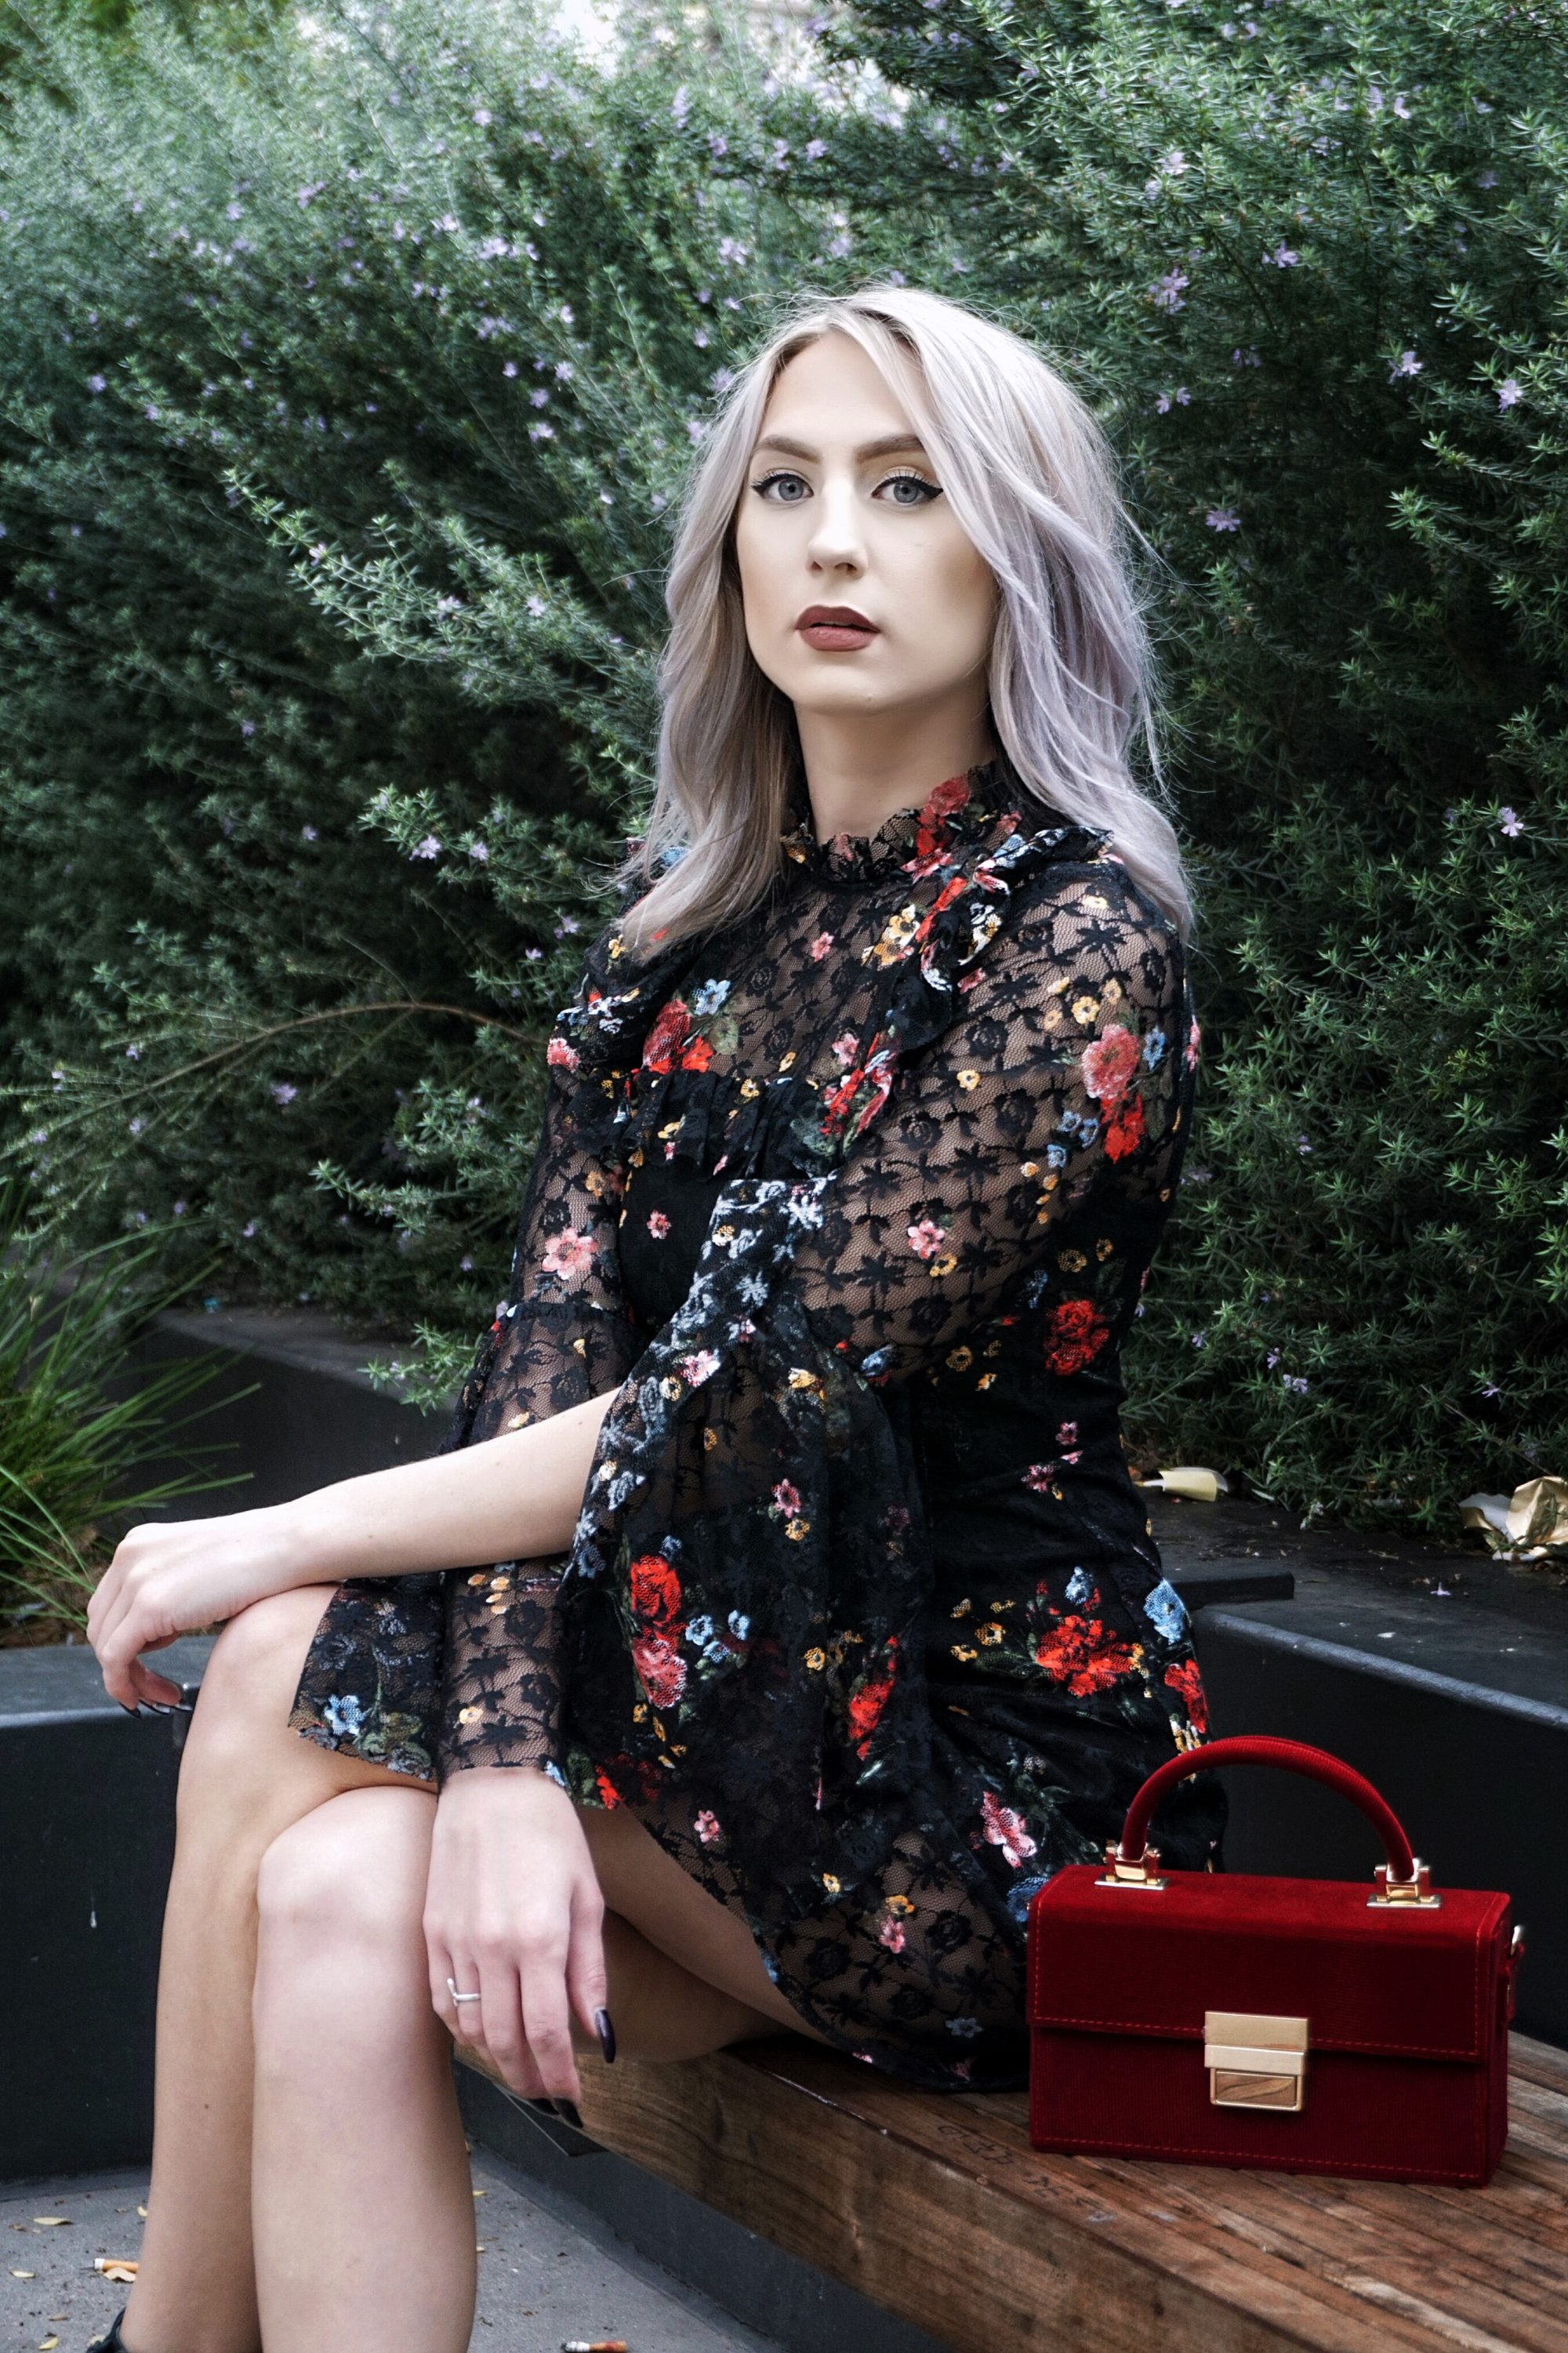 Topshop Gothic Lace Dress and Statement Boots | Until The Very Trend